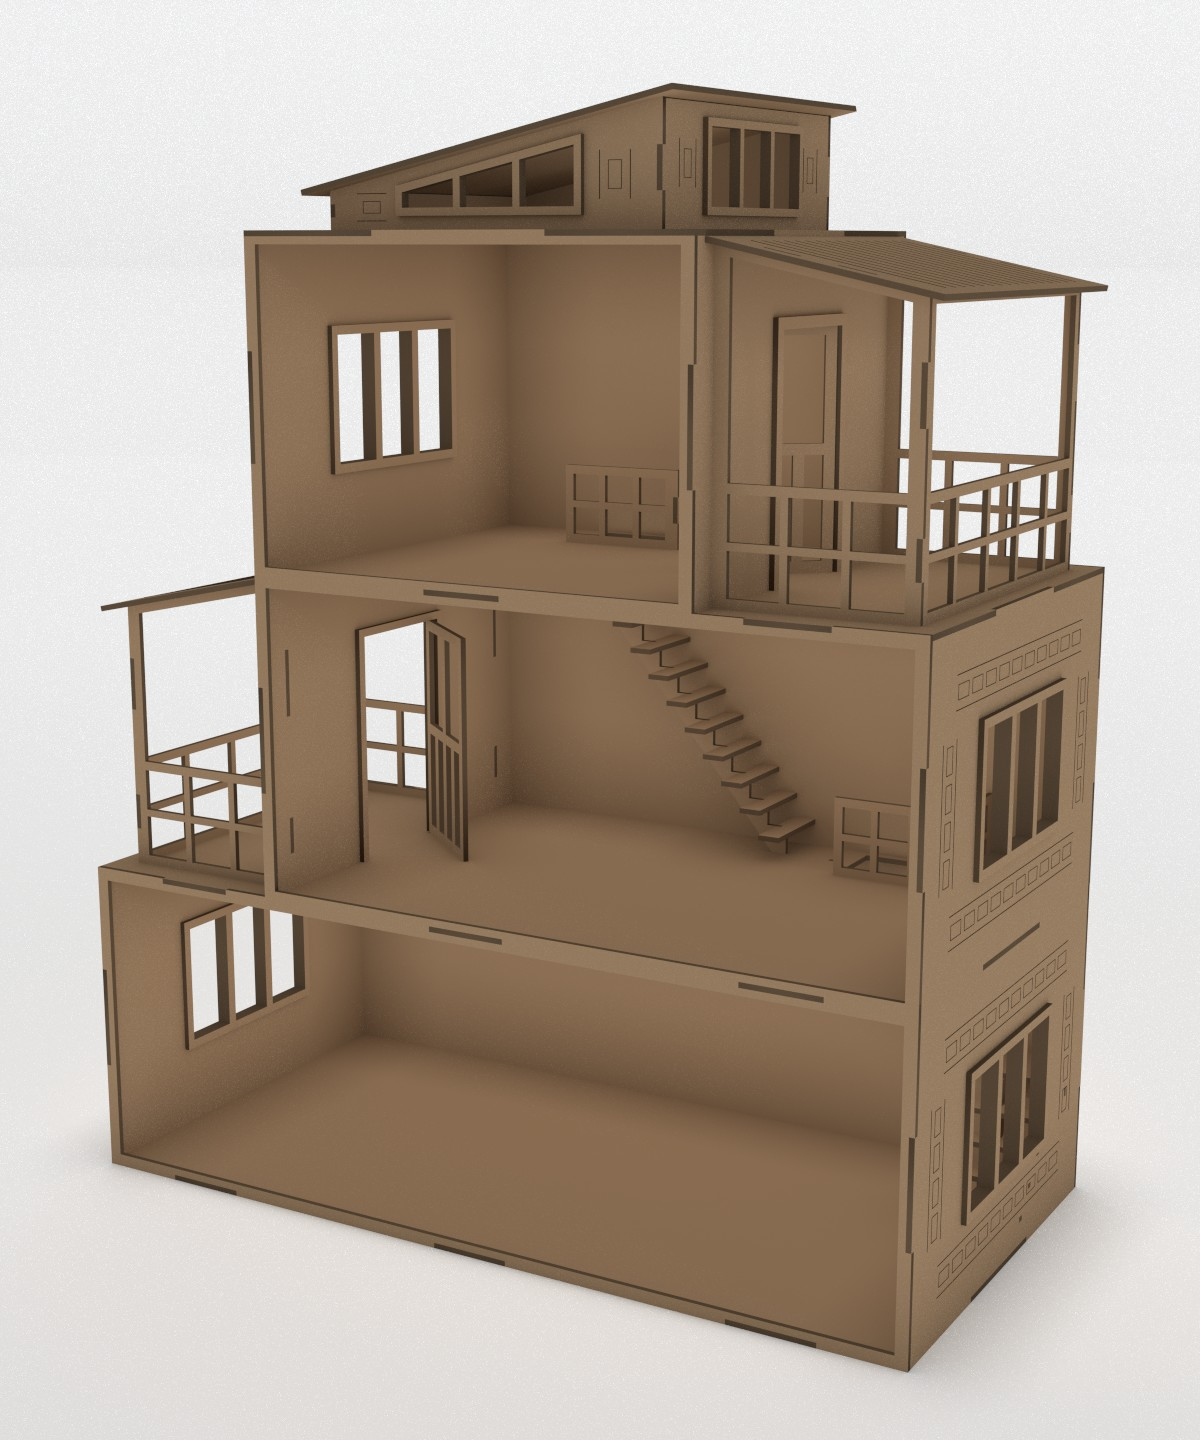 Drawing of a wooden dollhouse Free CDR Vectors Art